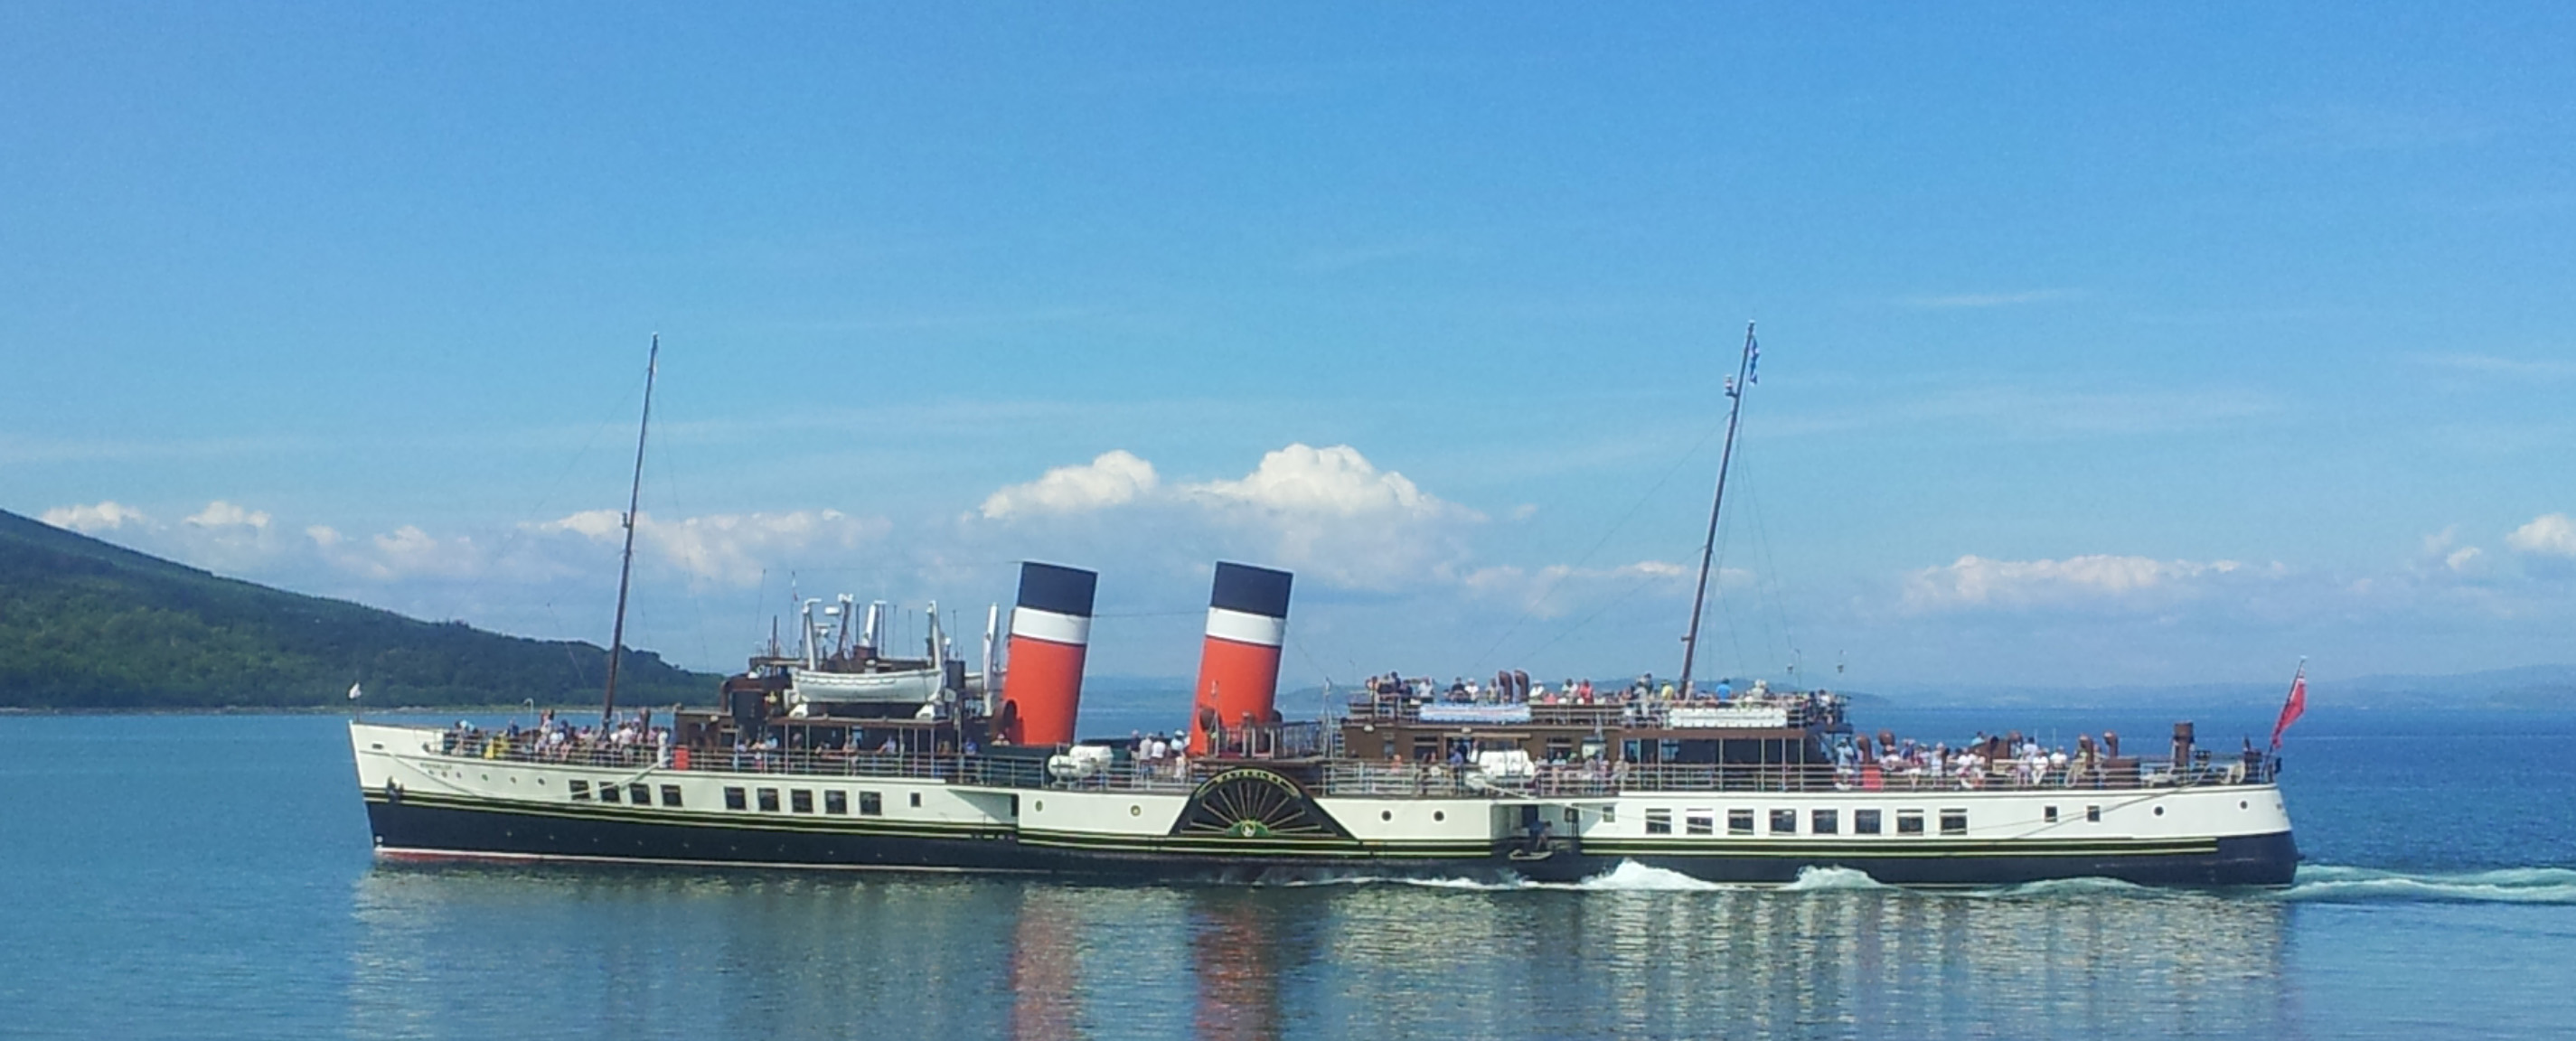 Waverley at Arran